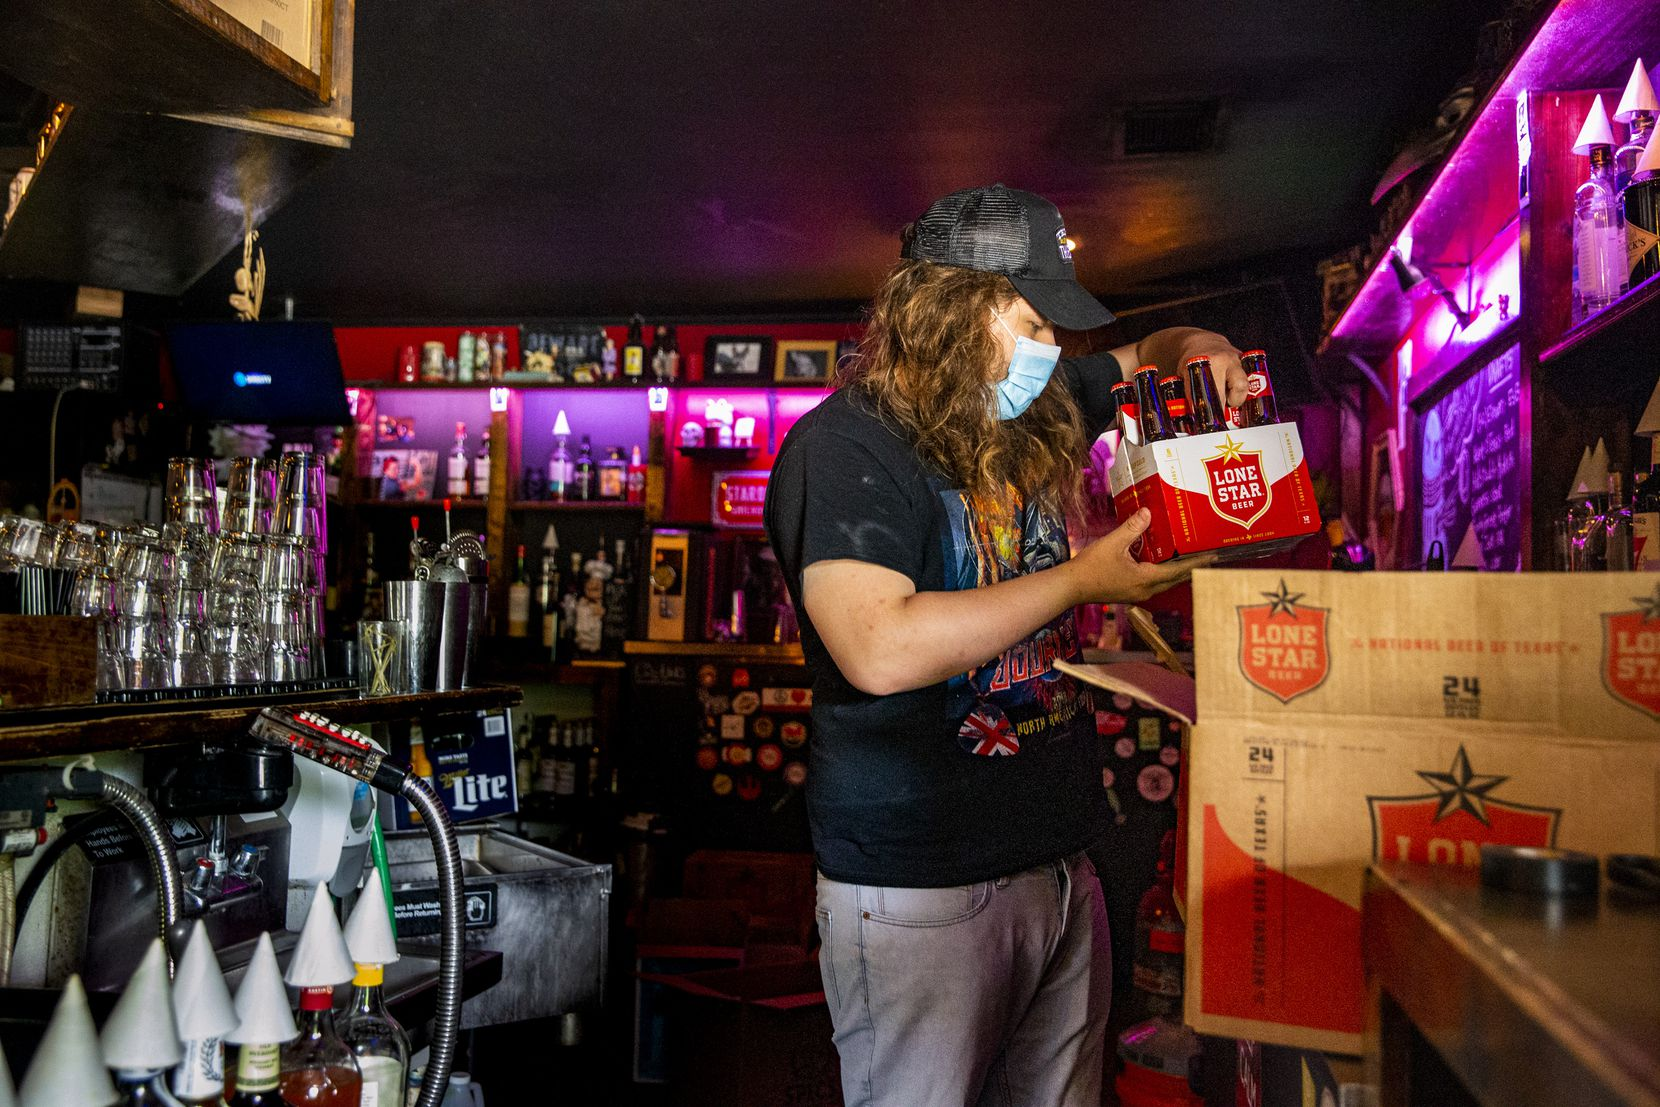 Manager Britt Clardy restocks supplies at Ten Bells Tavern in the Bishop Arts District of Dallas on Thursday, May 21, 2020. Texas Governor Greg Abbott announced on Monday that bars may begin reopening at 25% capacity on Friday.  (Lynda M. Gonzalez/The Dallas Morning News Pool)